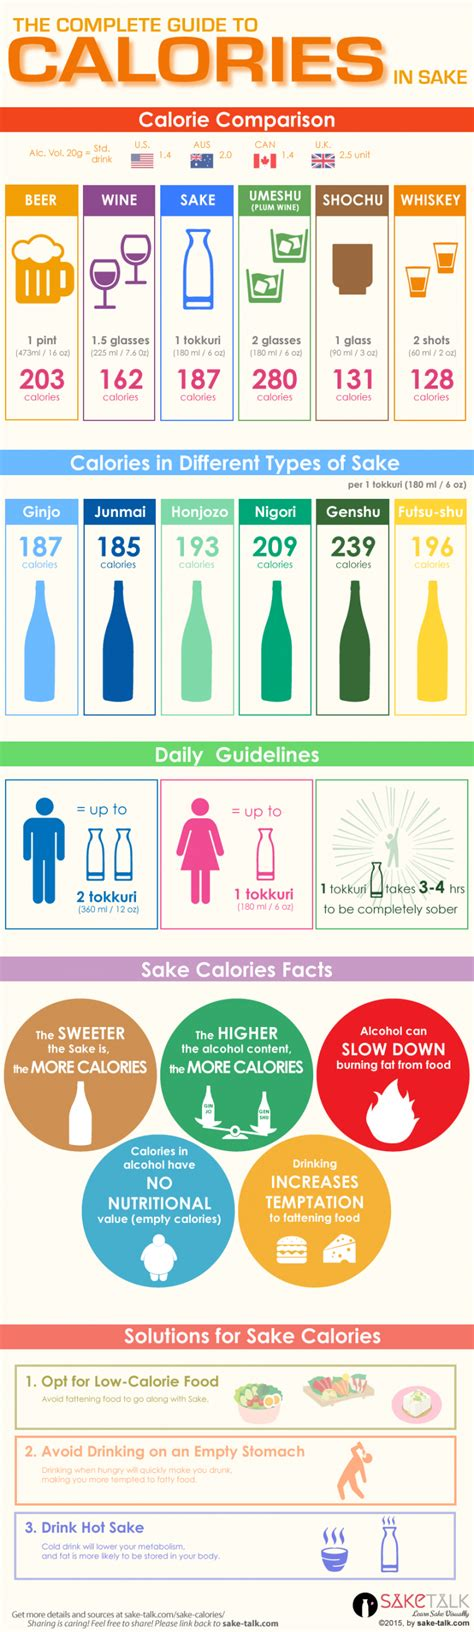 calories in sake calories how many calories are in sake saketalk